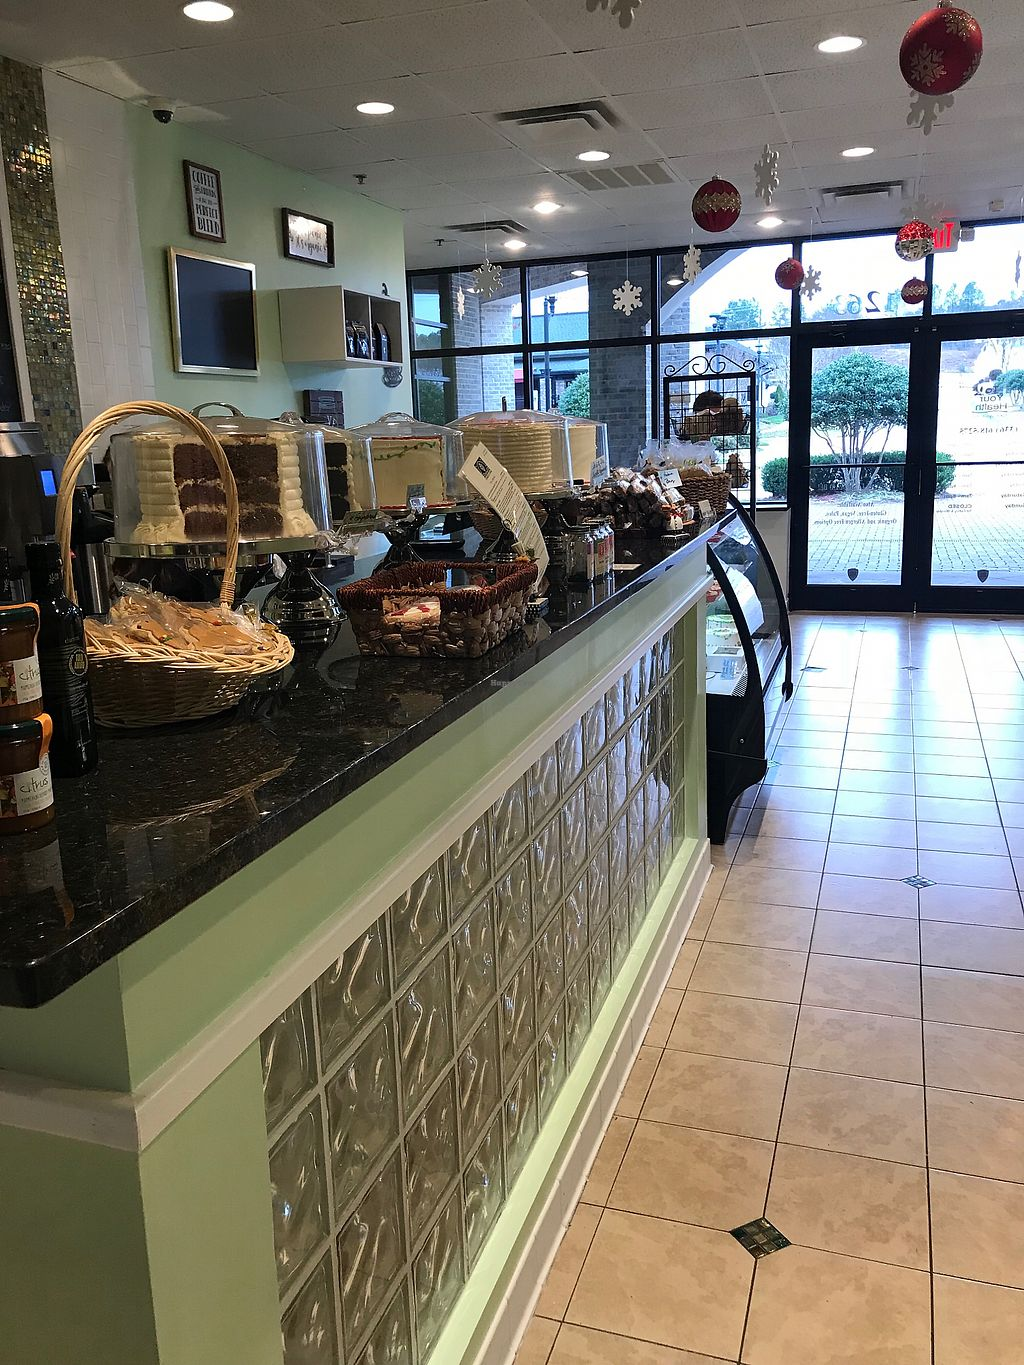 """Photo of To Your Health Bakery  by <a href=""""/members/profile/ChristinaCatherine"""">ChristinaCatherine</a> <br/>Cakes!  <br/> December 3, 2017  - <a href='/contact/abuse/image/97141/331729'>Report</a>"""